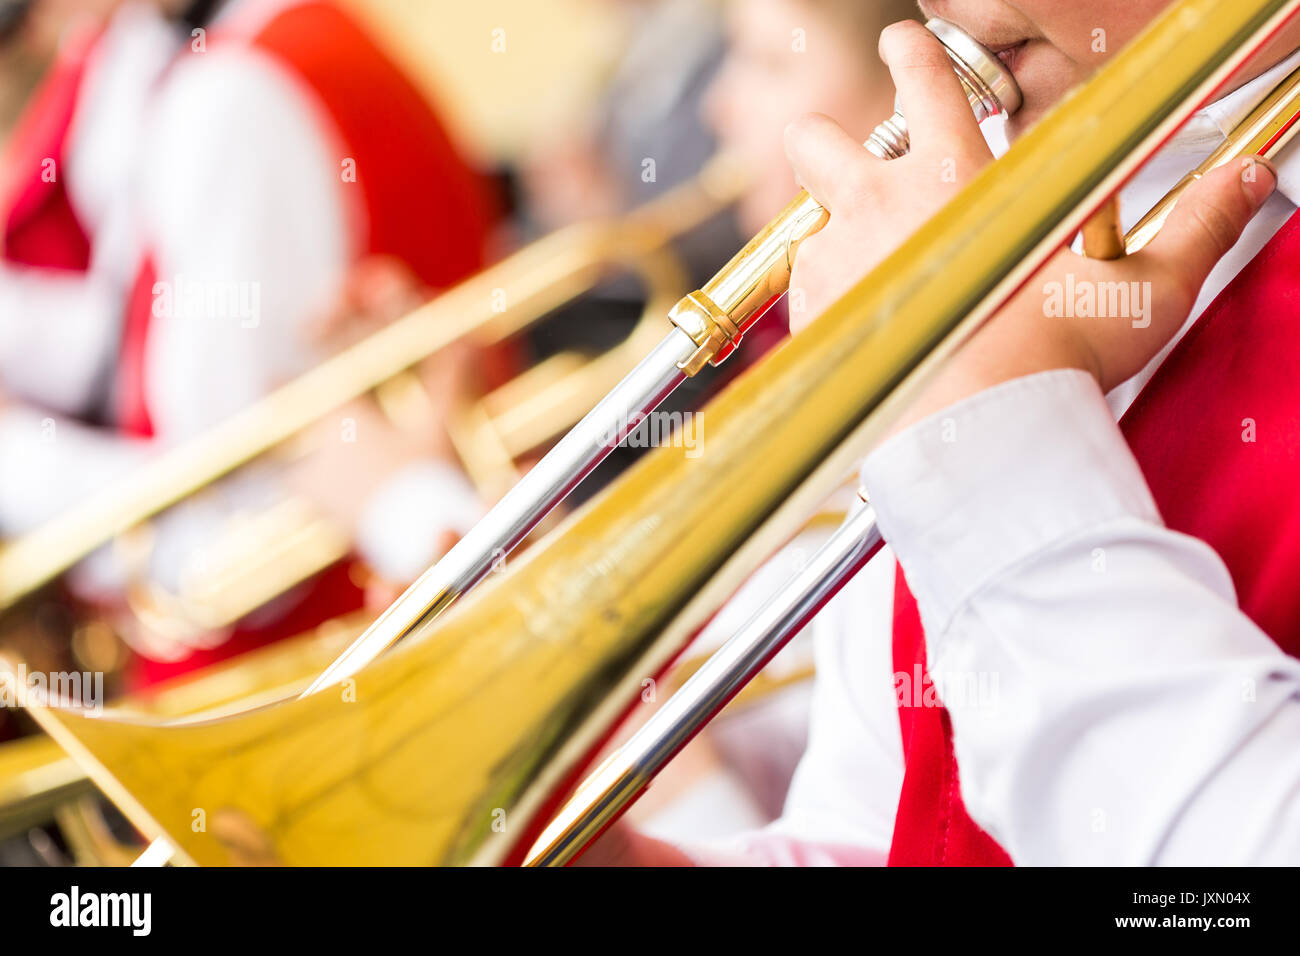 musical instrument, brass band and celebration concept - closeup playing trombone with mouthpiece and male hands, holiday performance of musicians in red and white concert suits, selective focus. - Stock Image